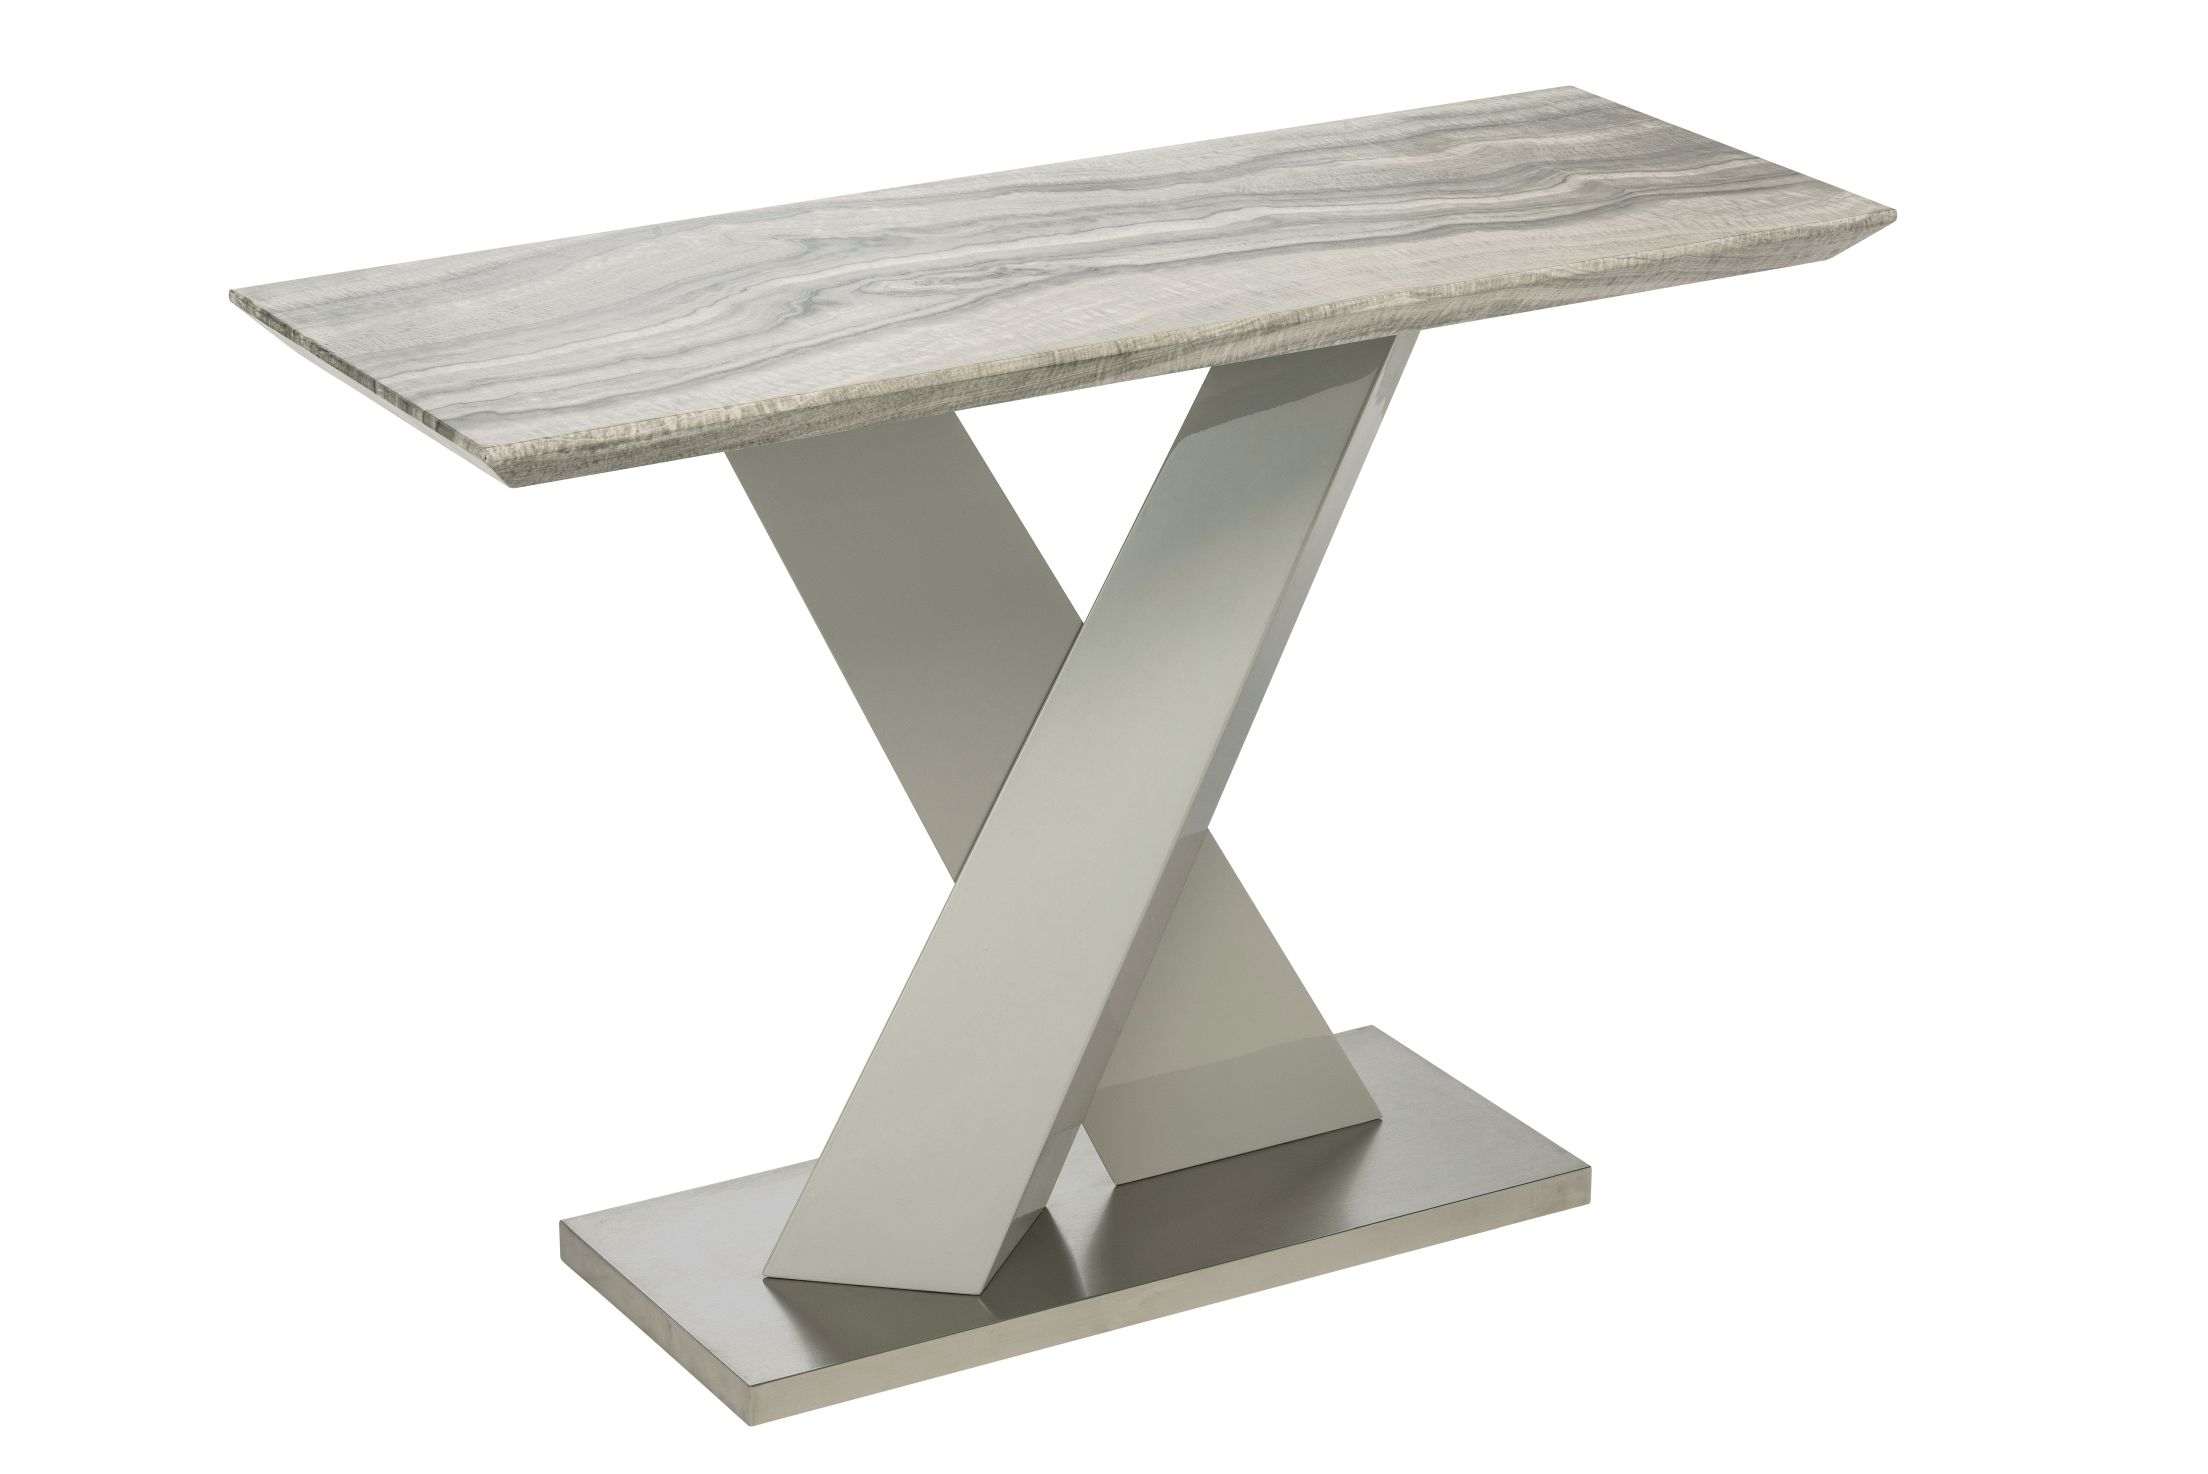 Merano Console Table with Granite Effect Top   Dining Room ...